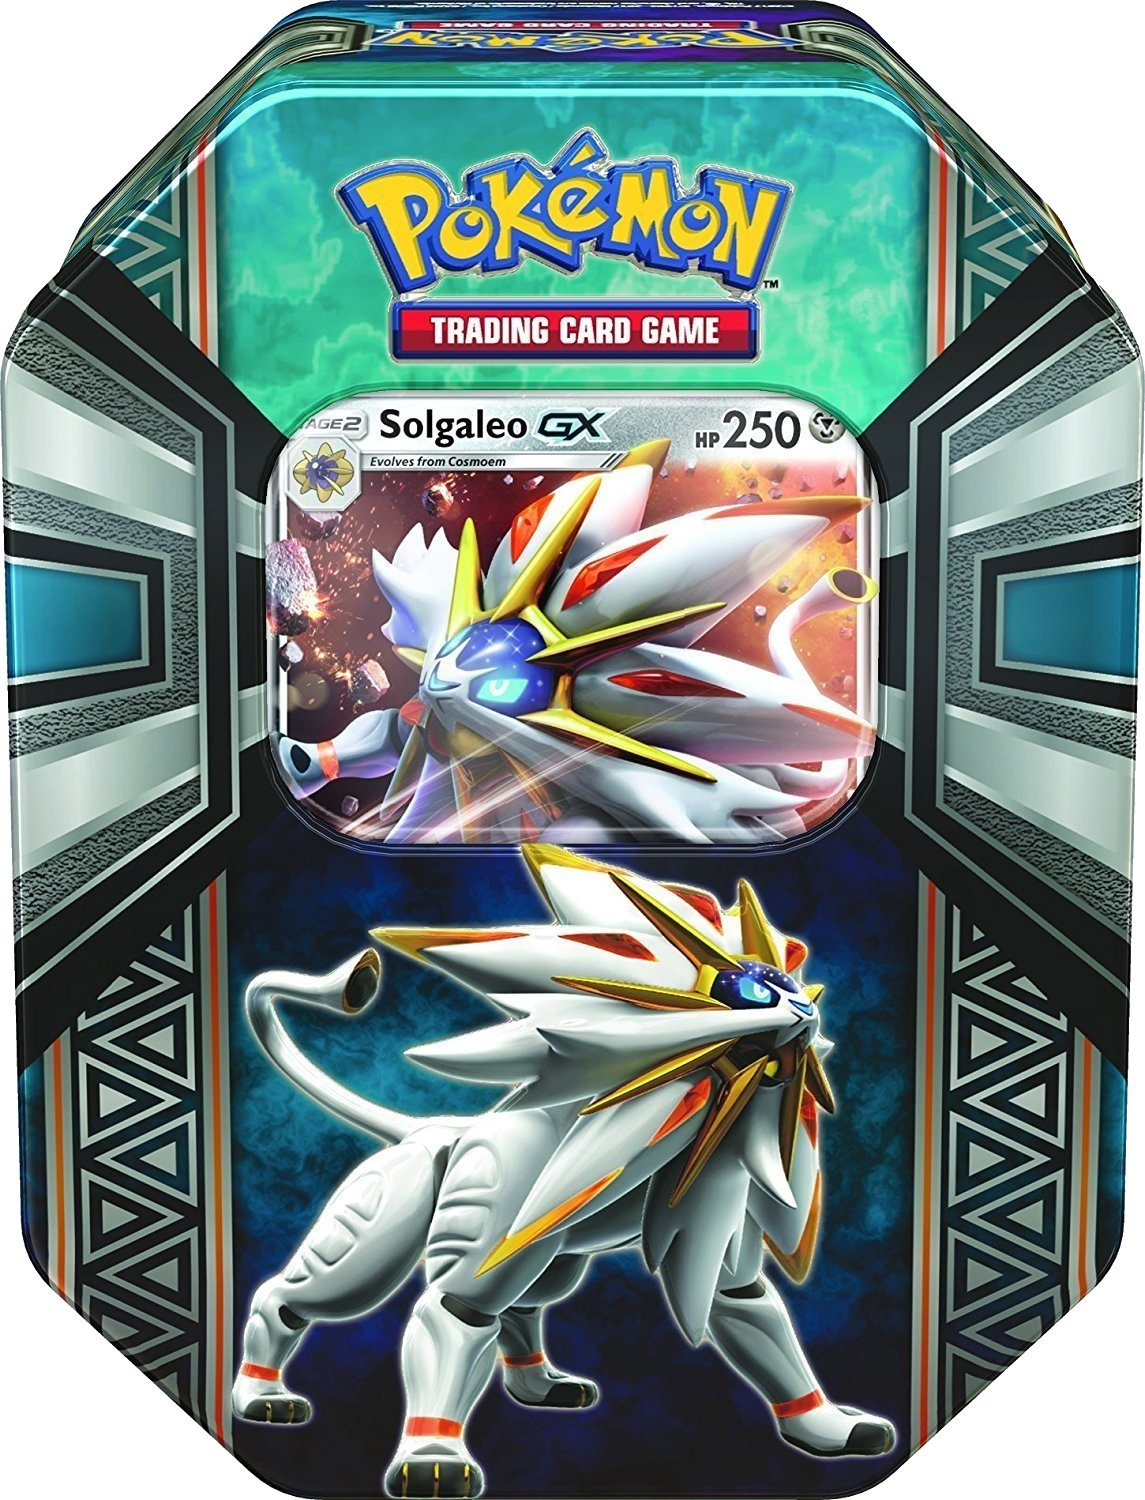 Pokemon TCG: Legends of Alola Solgaleo-GX Tin   Collectible Trading Card Set   4 Booster Packs, 1 Ultra Rare Foil Promo Card Featuring Solgaleo-GX, Online Code Card   Battle and Build Your Pokedex Excell Marketing L.C. us toys 097712535241